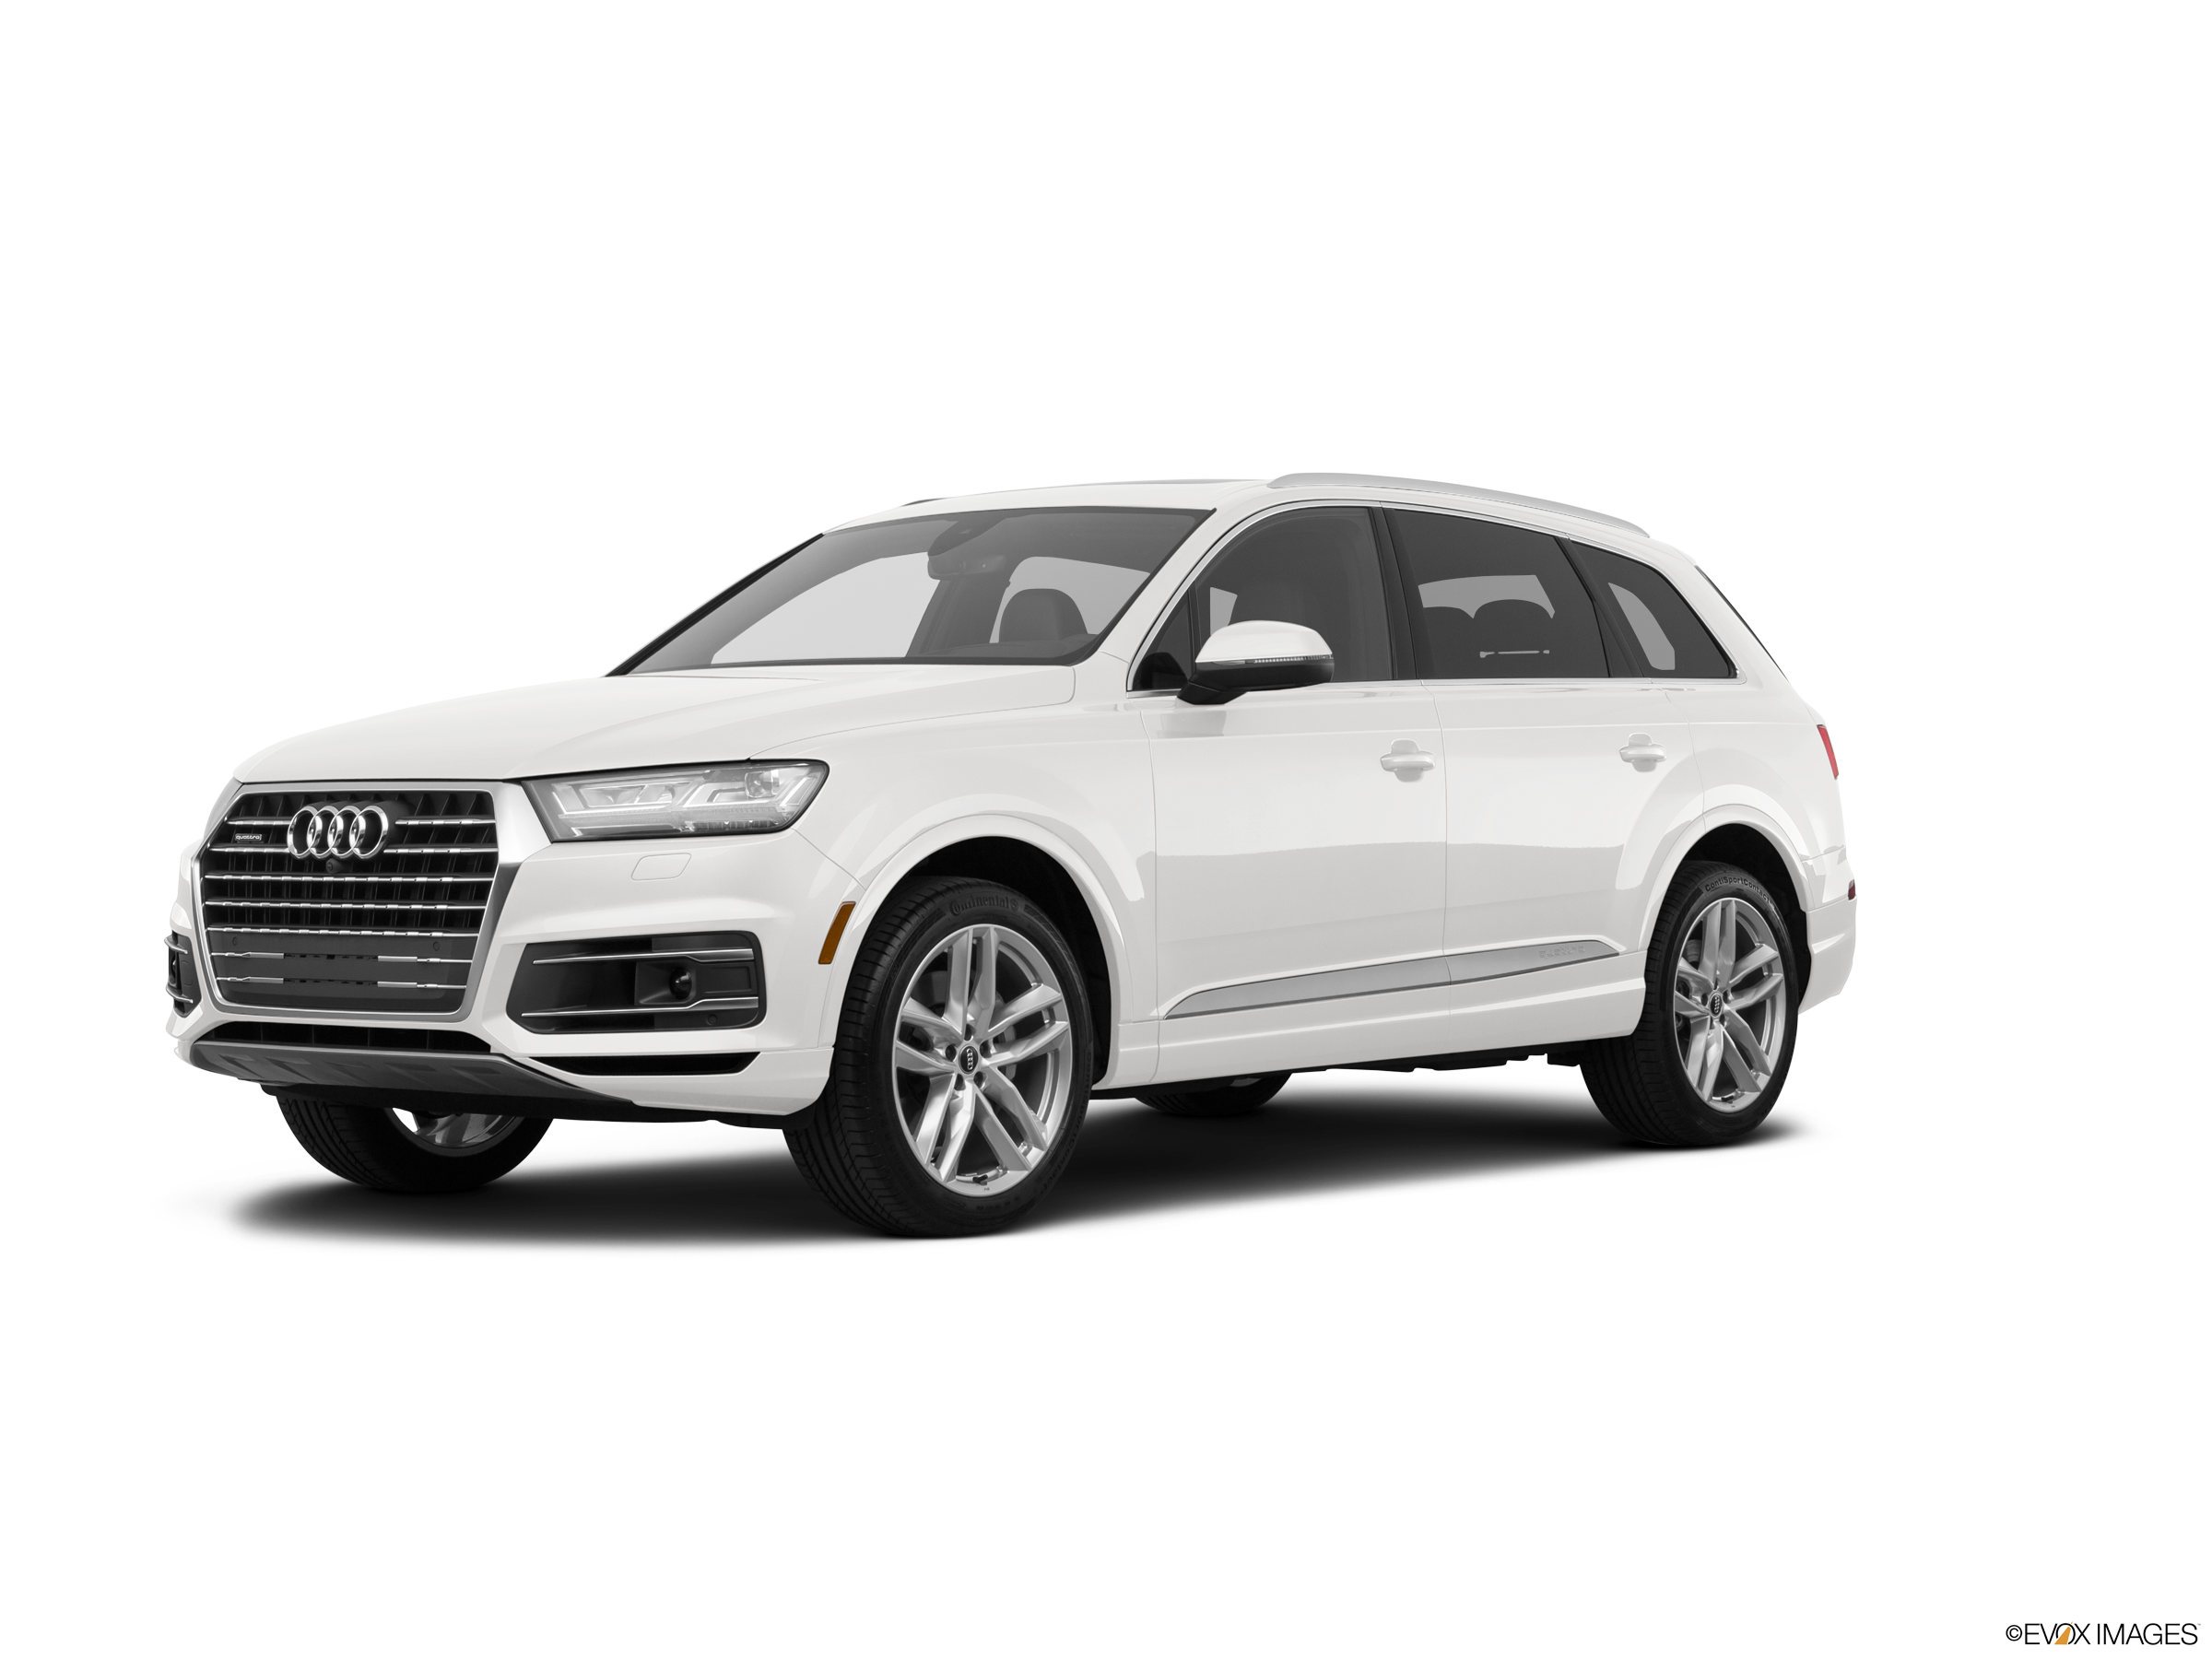 Top Expert Rated Luxury Vehicles of 2018 - 2018 Audi Q7